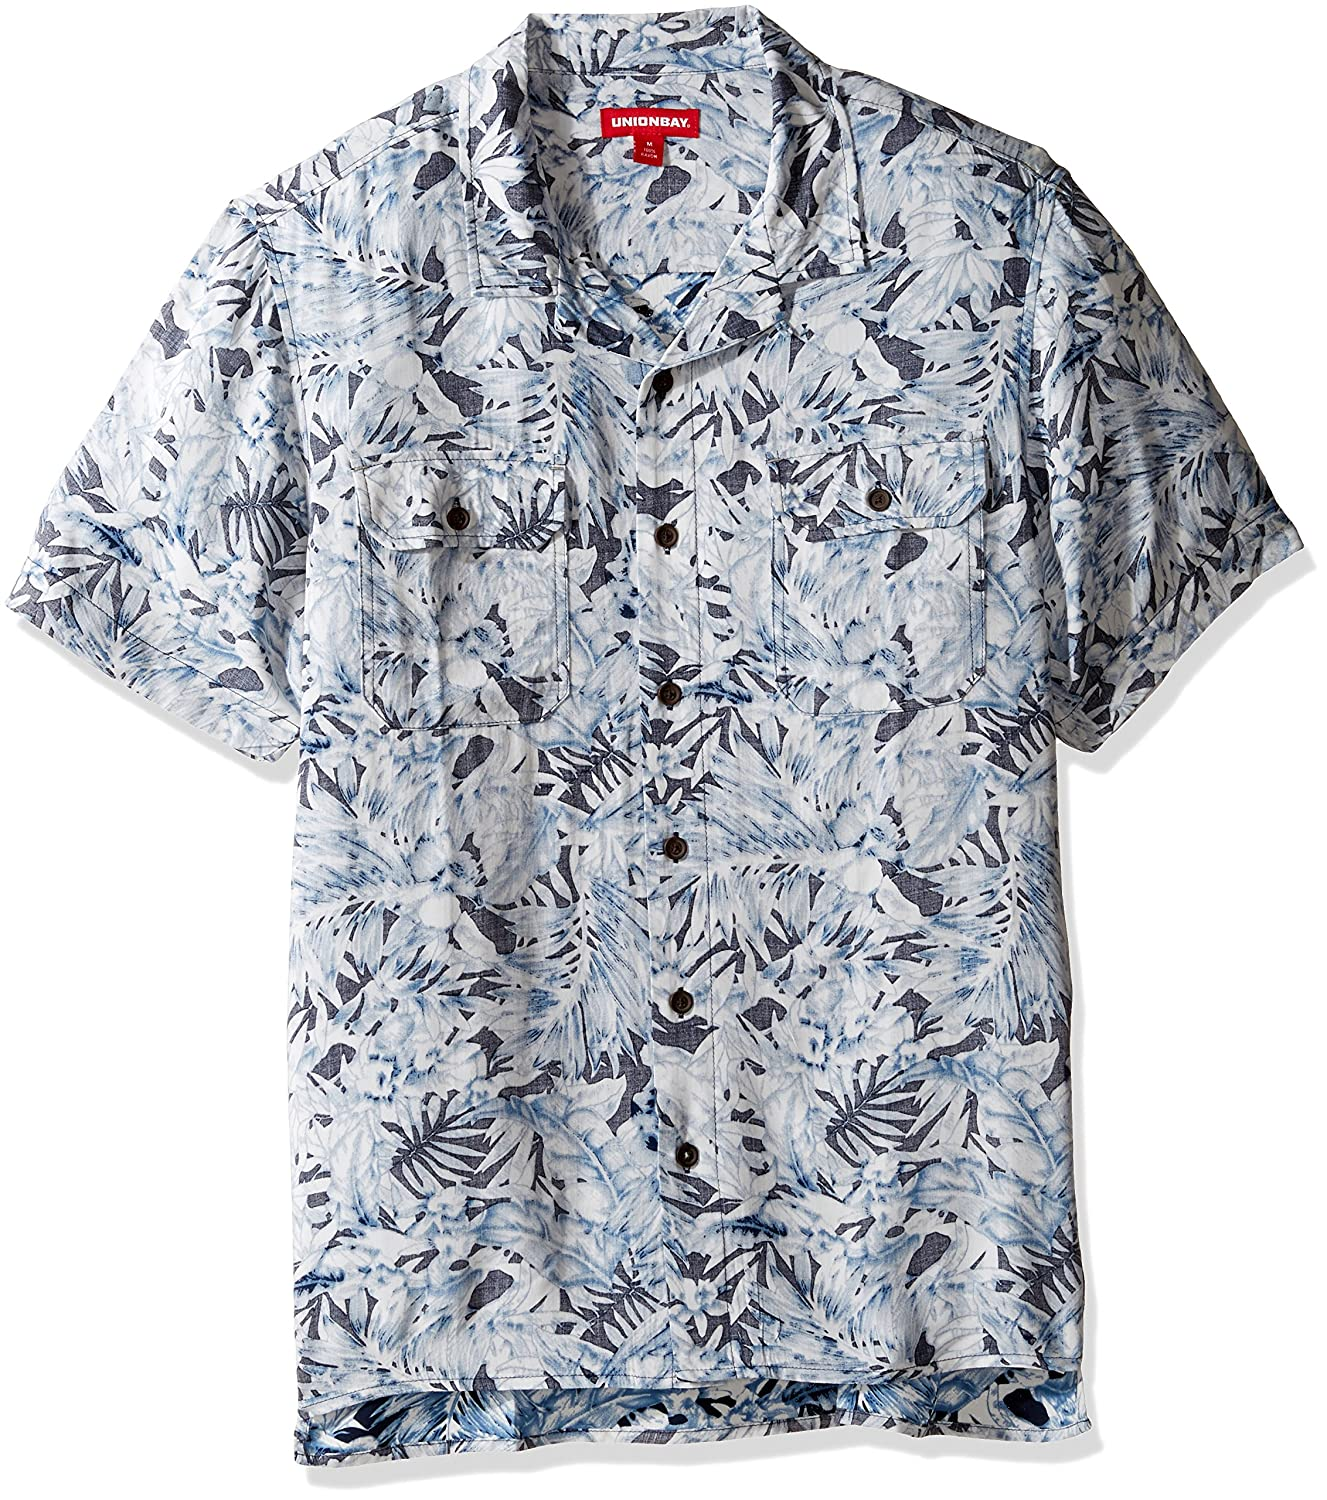 UNIONBAY Men's Classic Short Sleeve Rayon Button-up Woven Shirt Unionbay Young Men's Y13049U